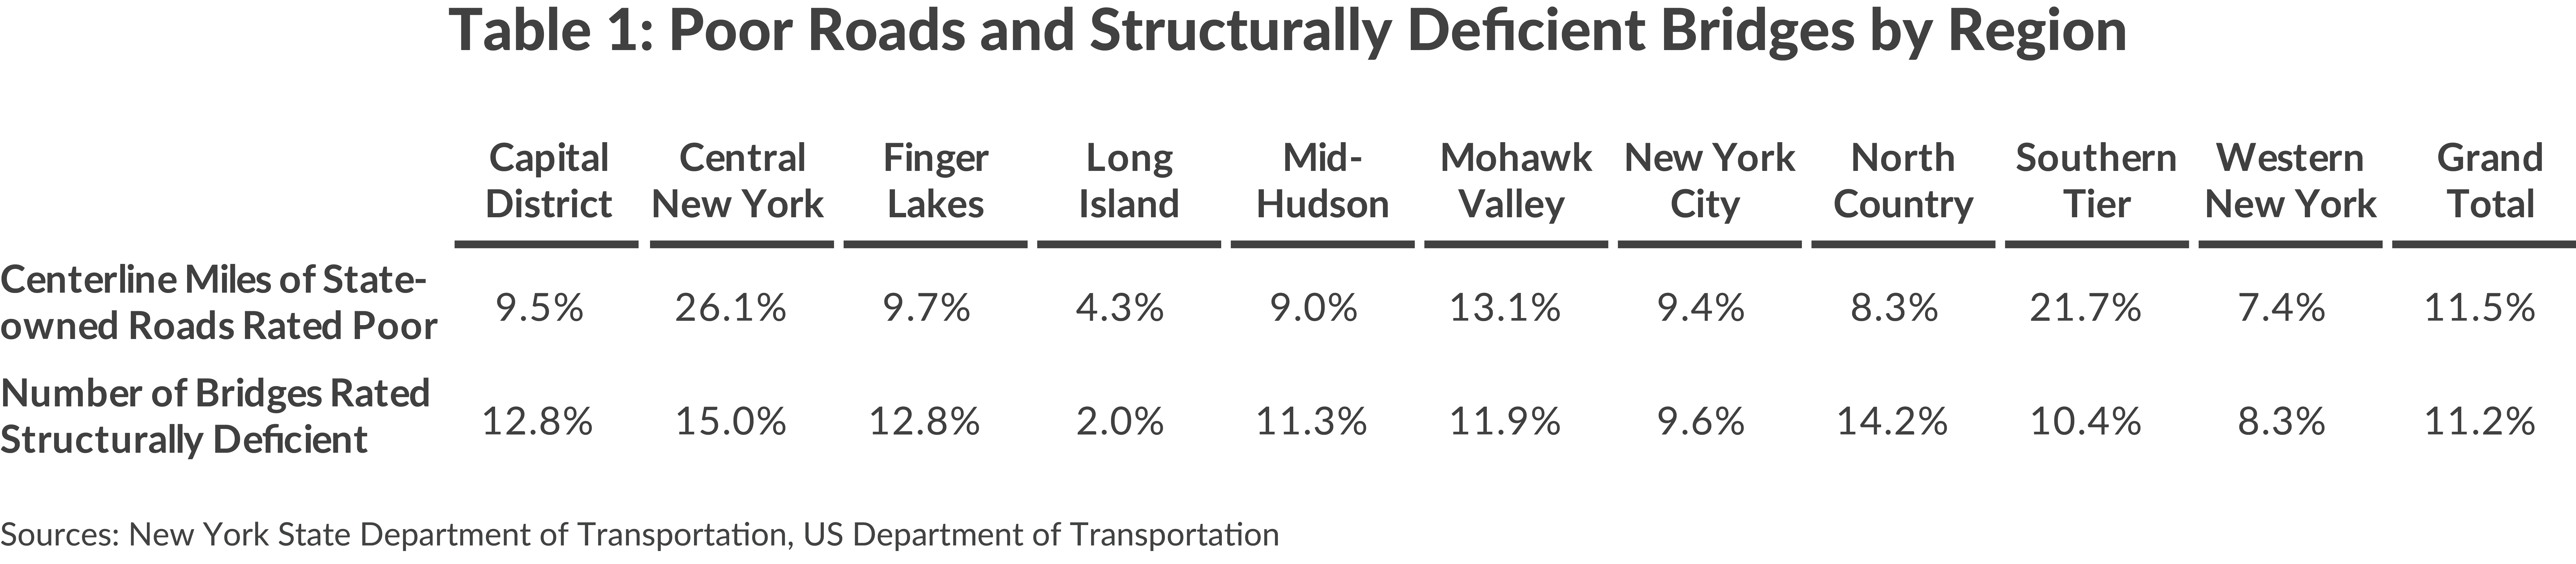 Table 1: Poor Roads and Structurally Deficient Bridges by Region